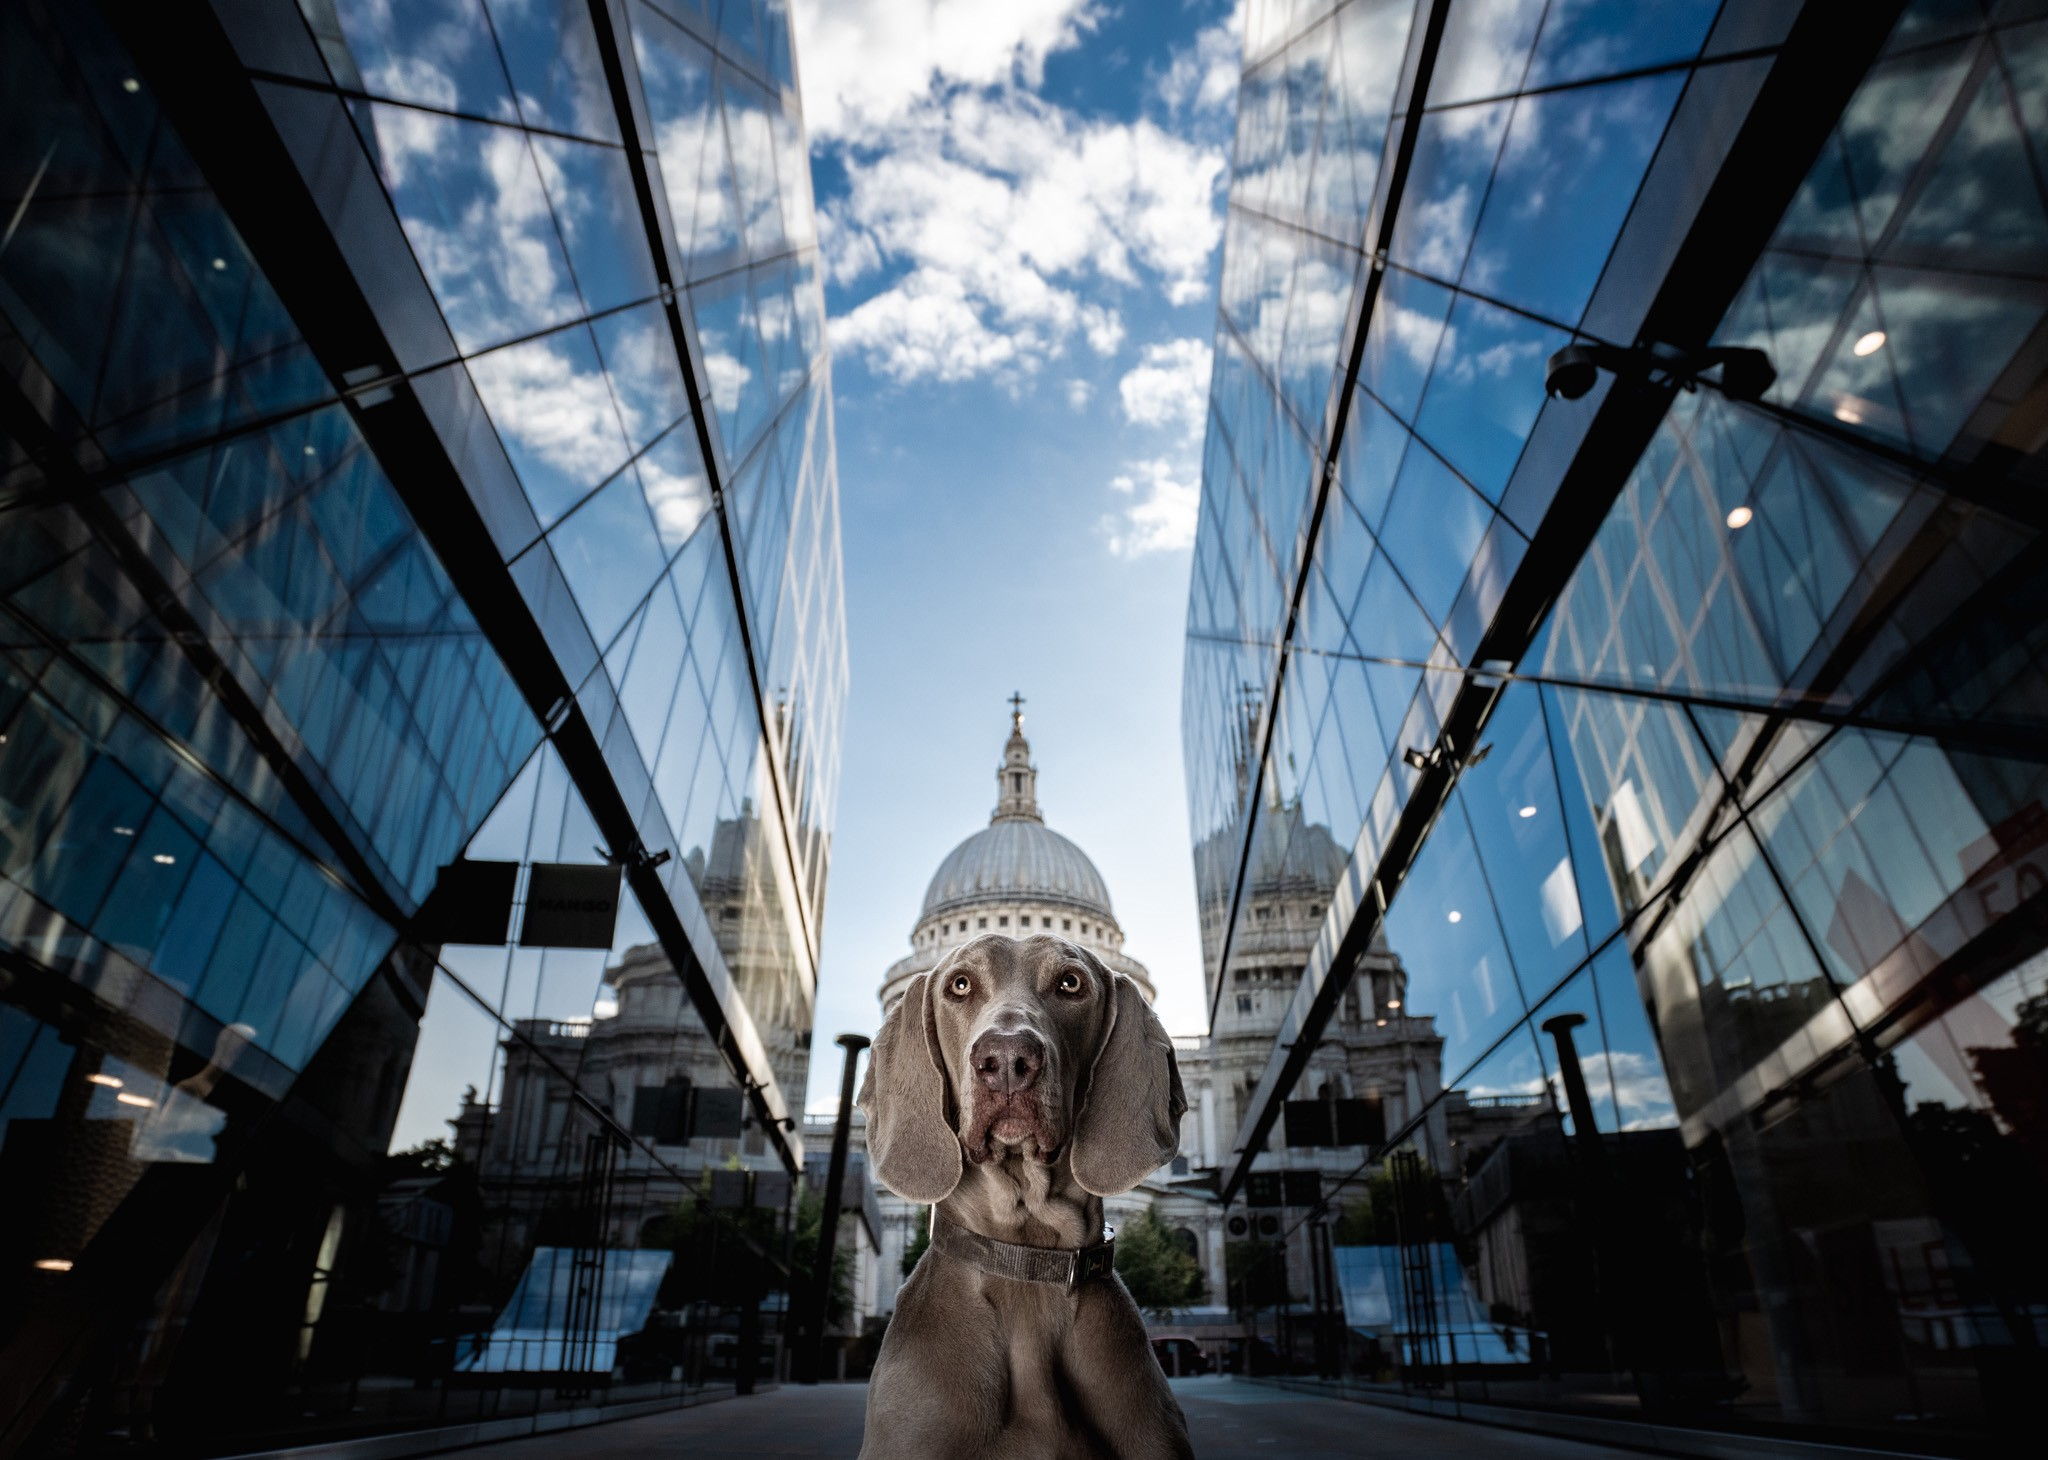 A dog appears posed in the street, shot from below and appearing to be wearing a capital building as a crown